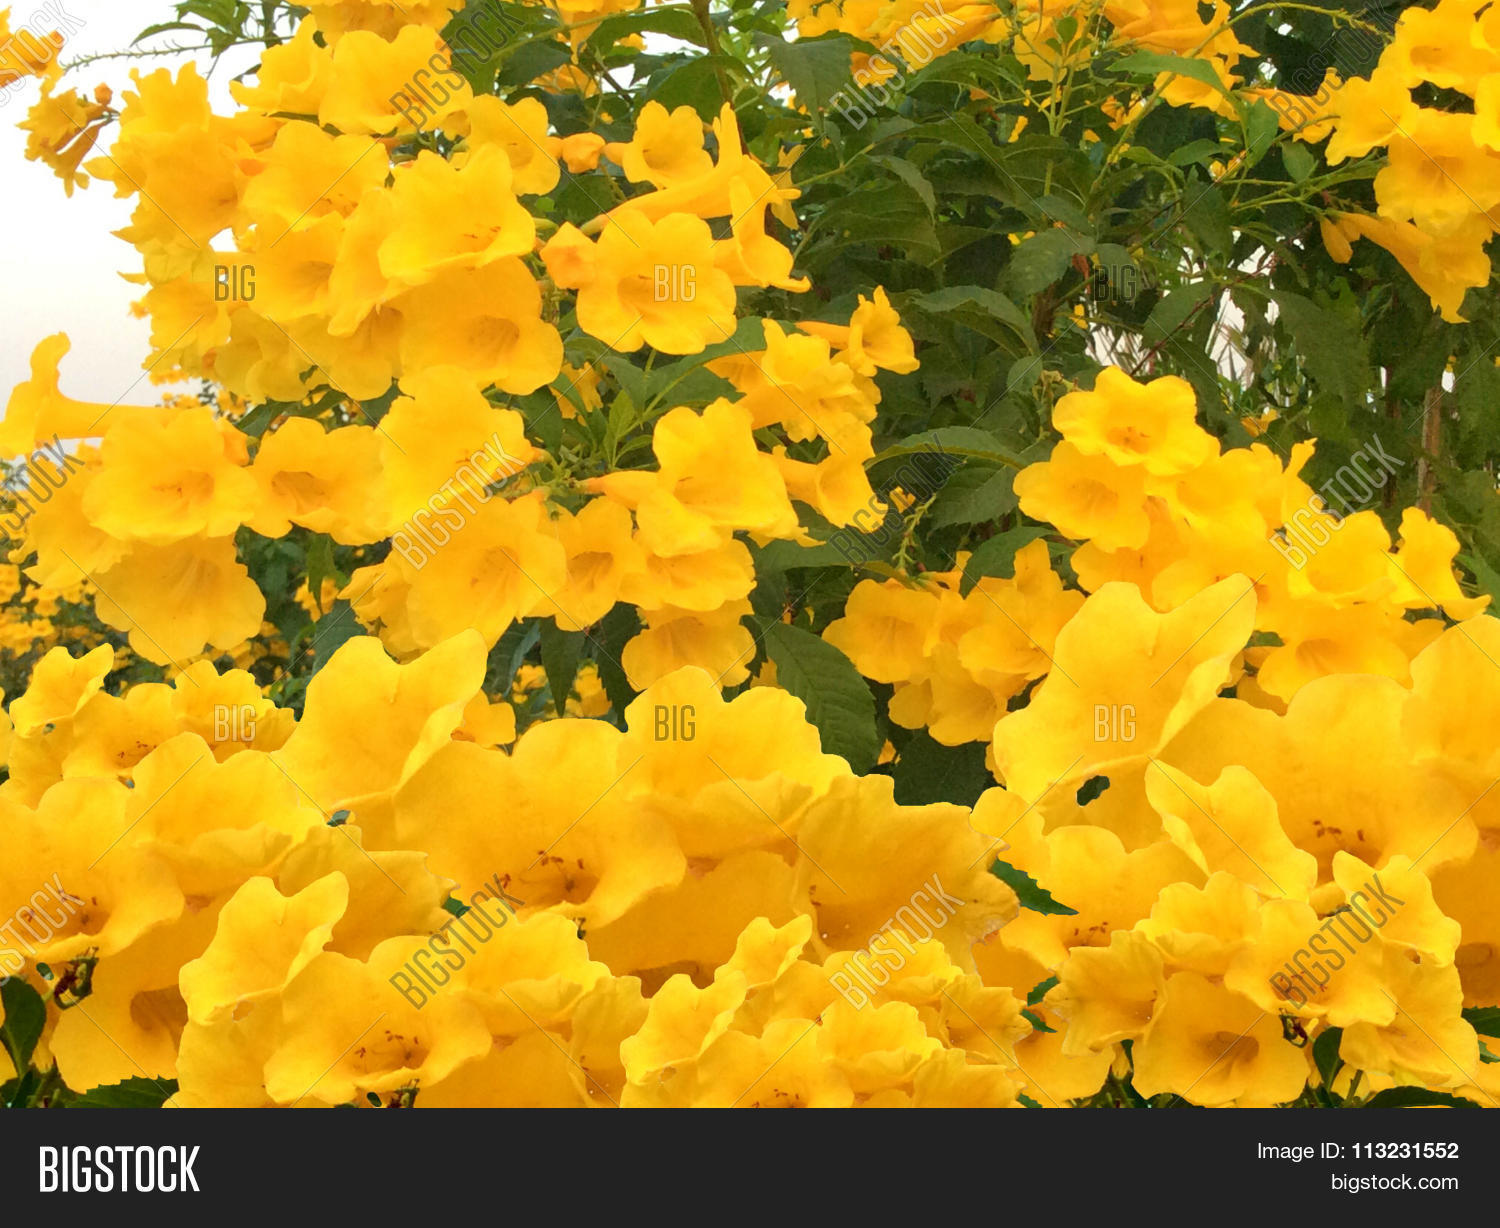 Bush Yellow Elder Image Photo Free Trial Bigstock